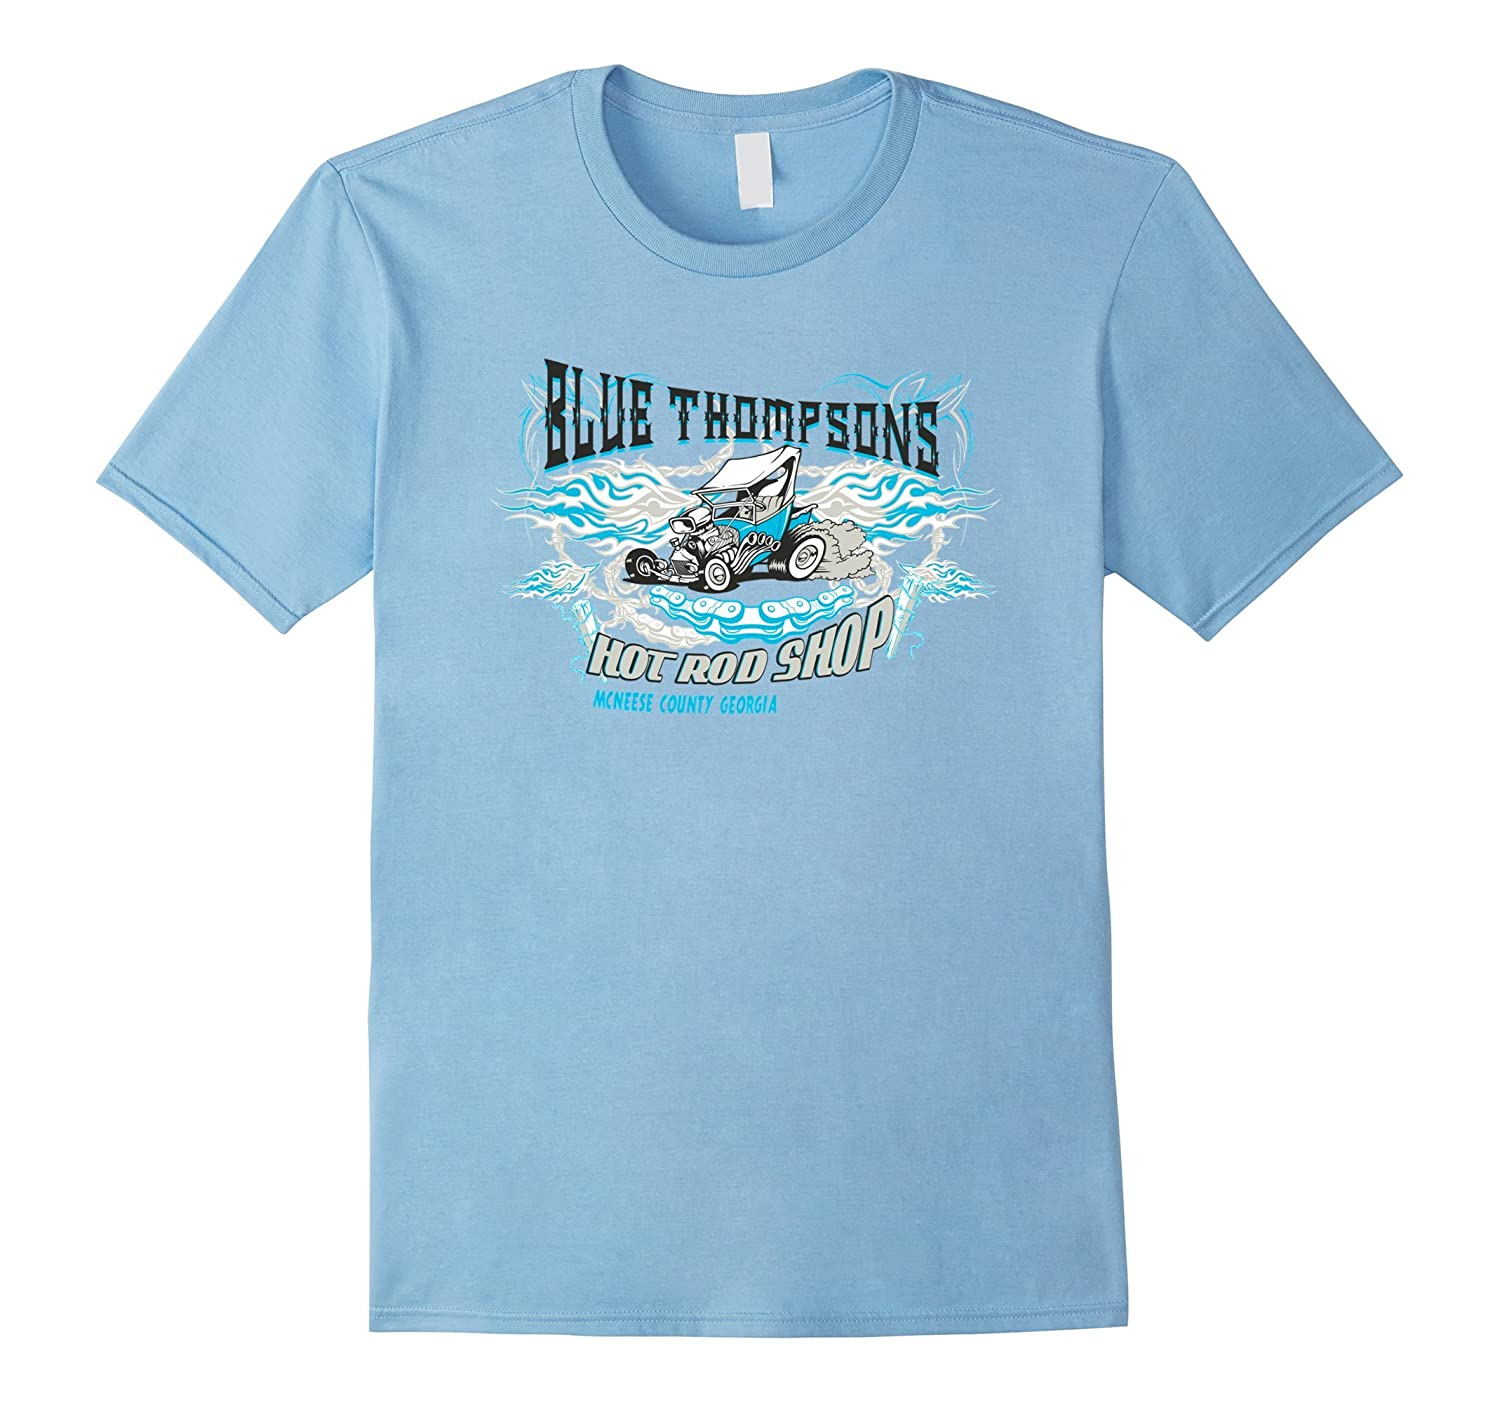 Hot rod shop t shirts for women graphic tees for men art for Graphic t shirt shop